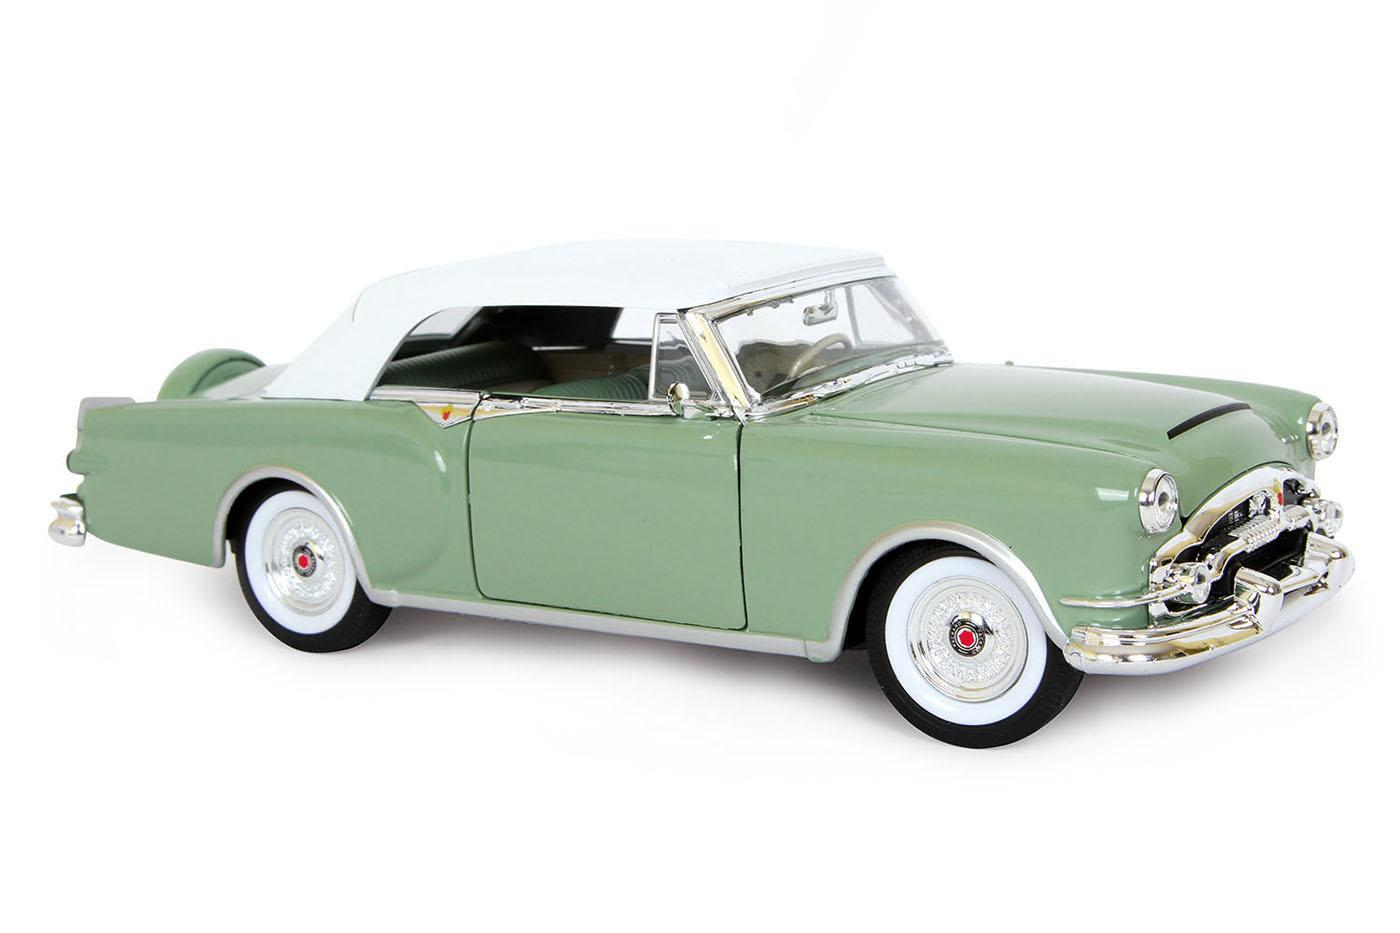 Model automobilu Packard Caribean